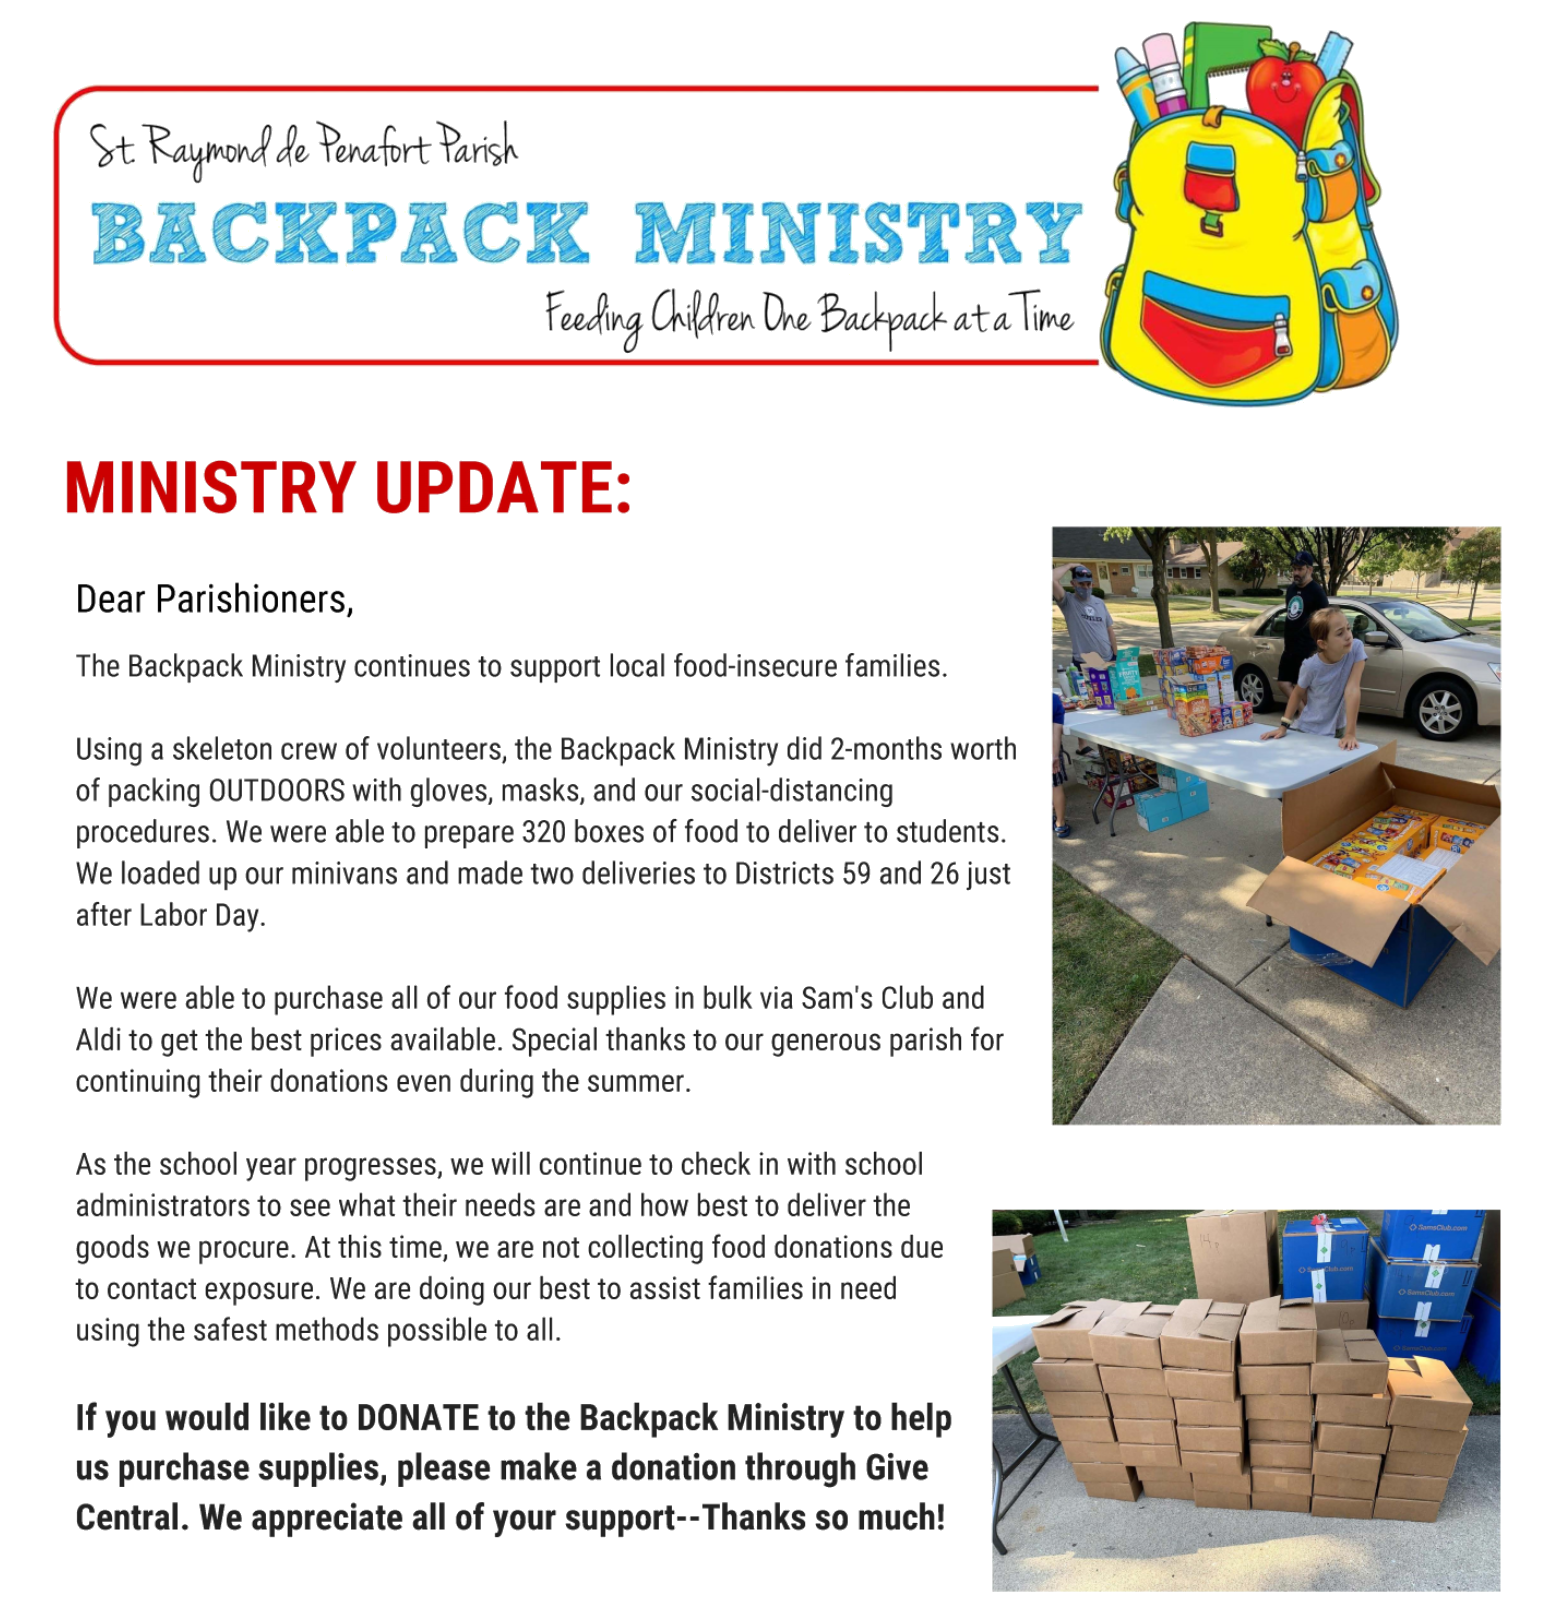 Backpack Ministry Update